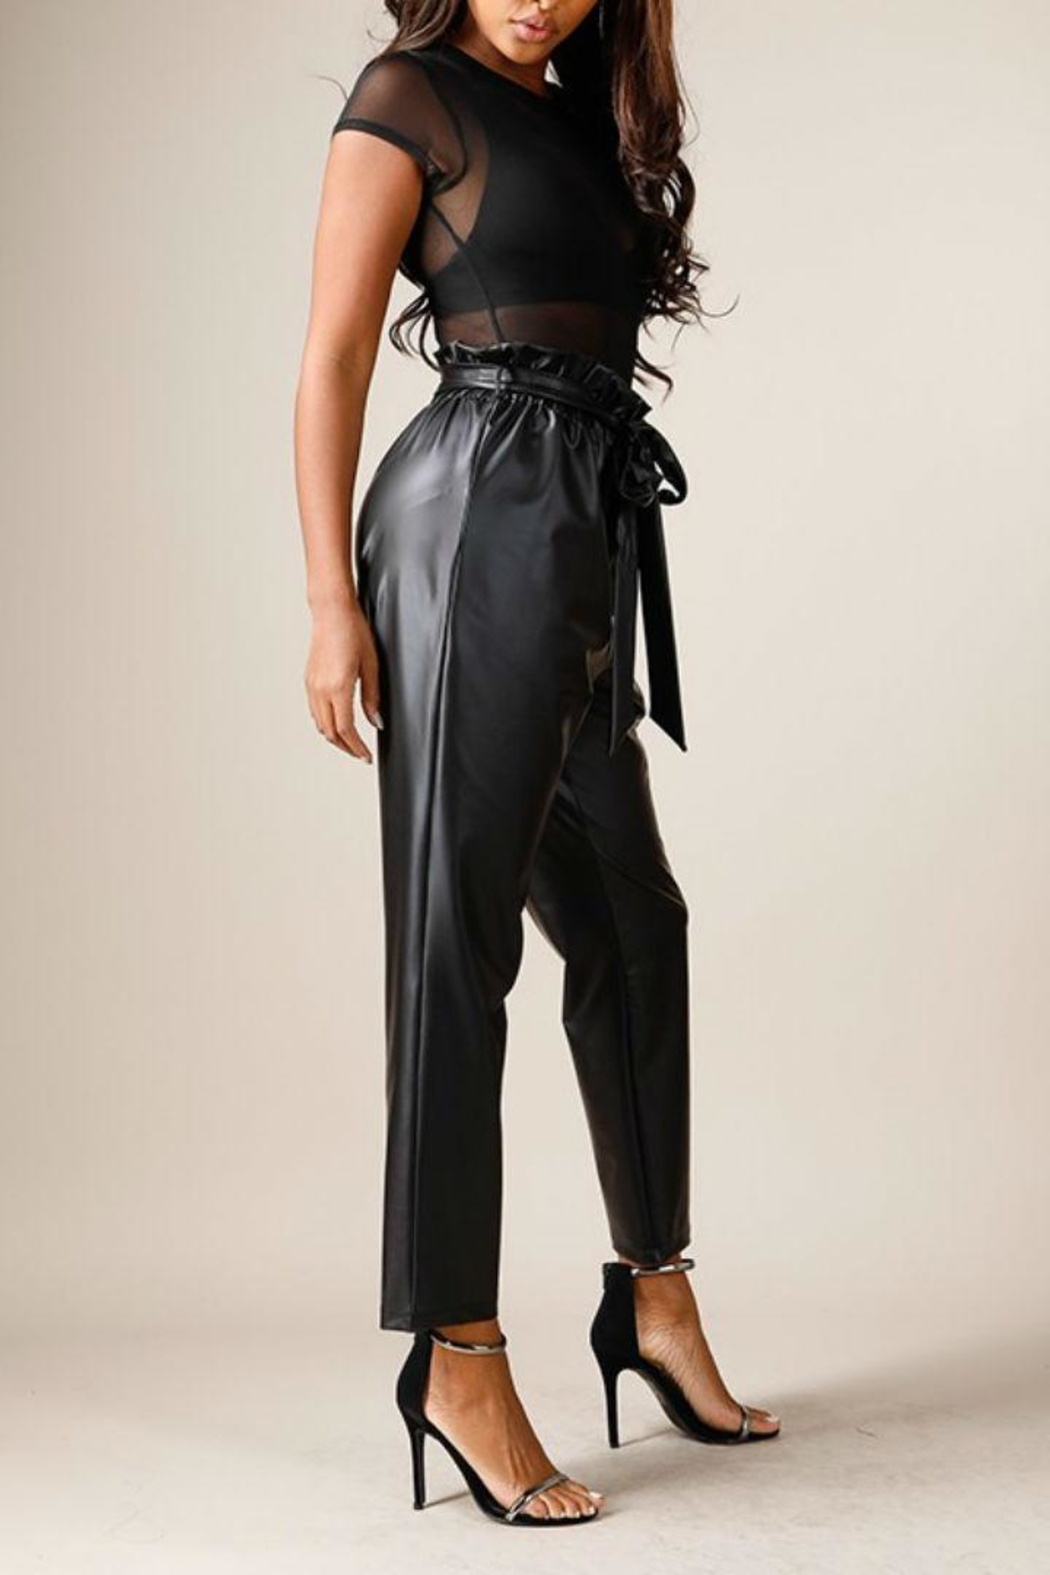 K too Faux Leather Pants - Side Cropped Image